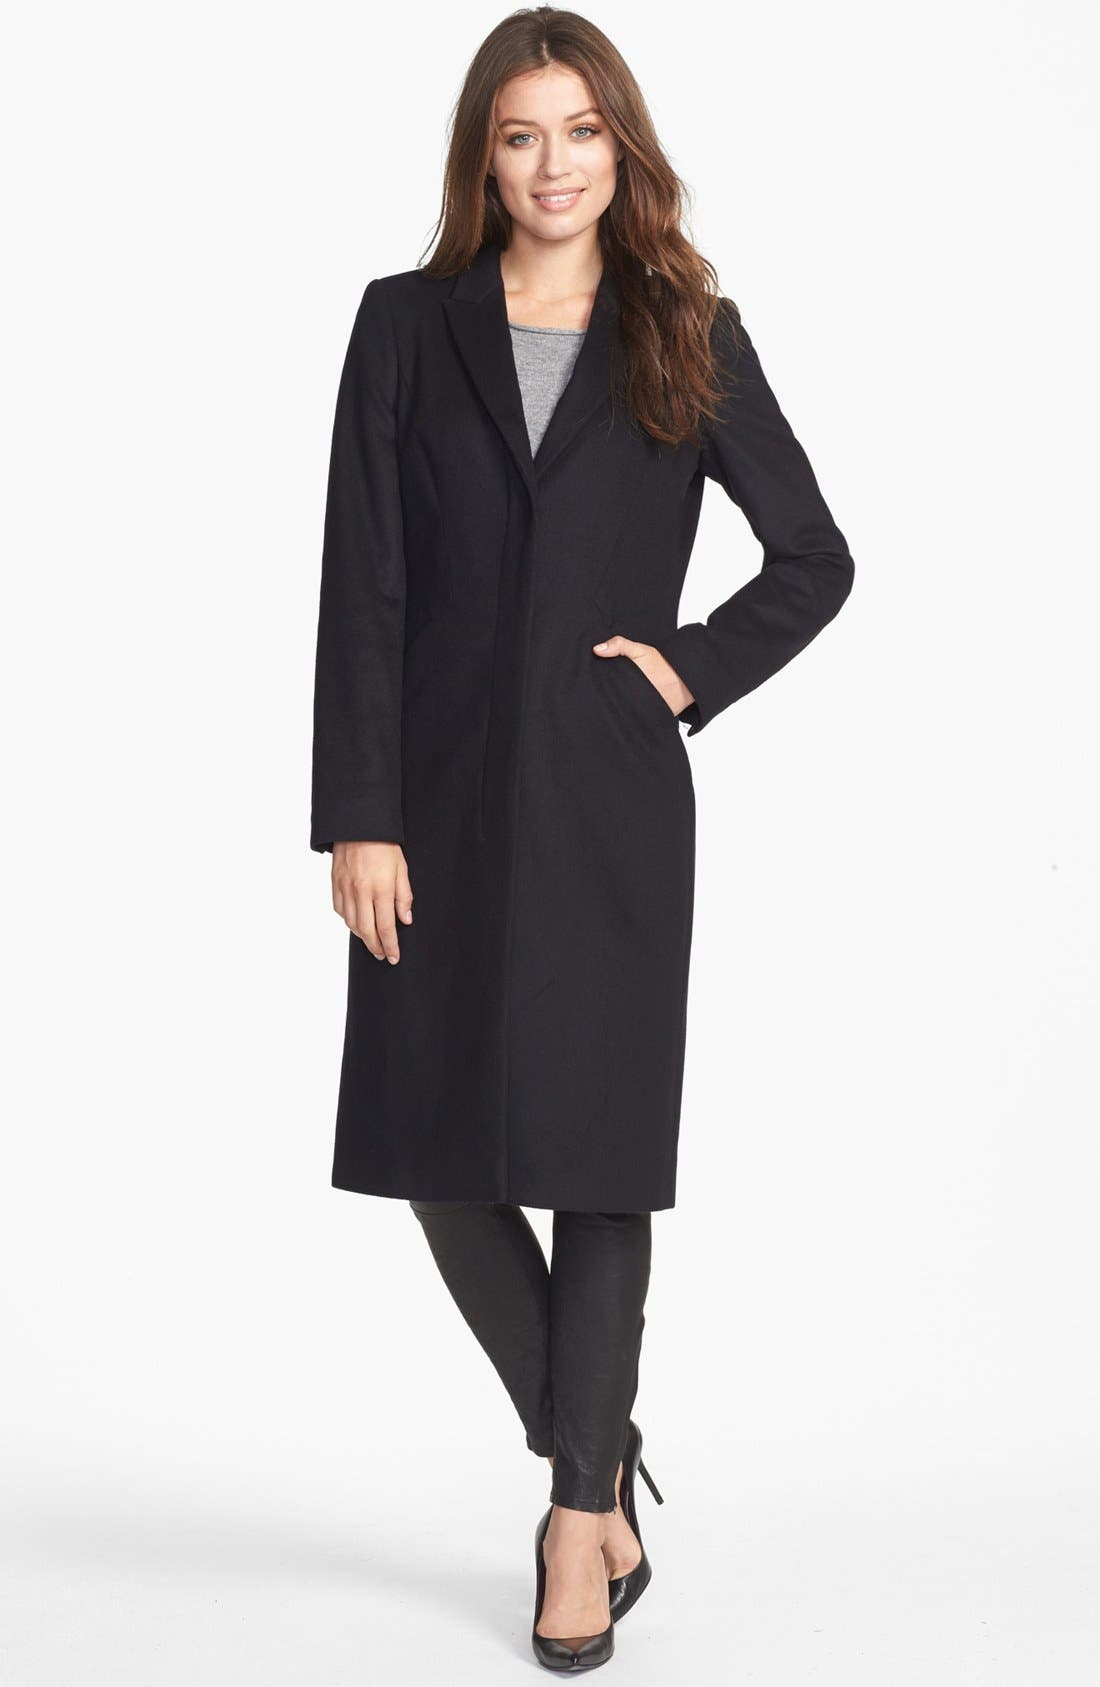 Main Image - BOSS HUGO BOSS 'Cavella' Wool & Cashmere Coat